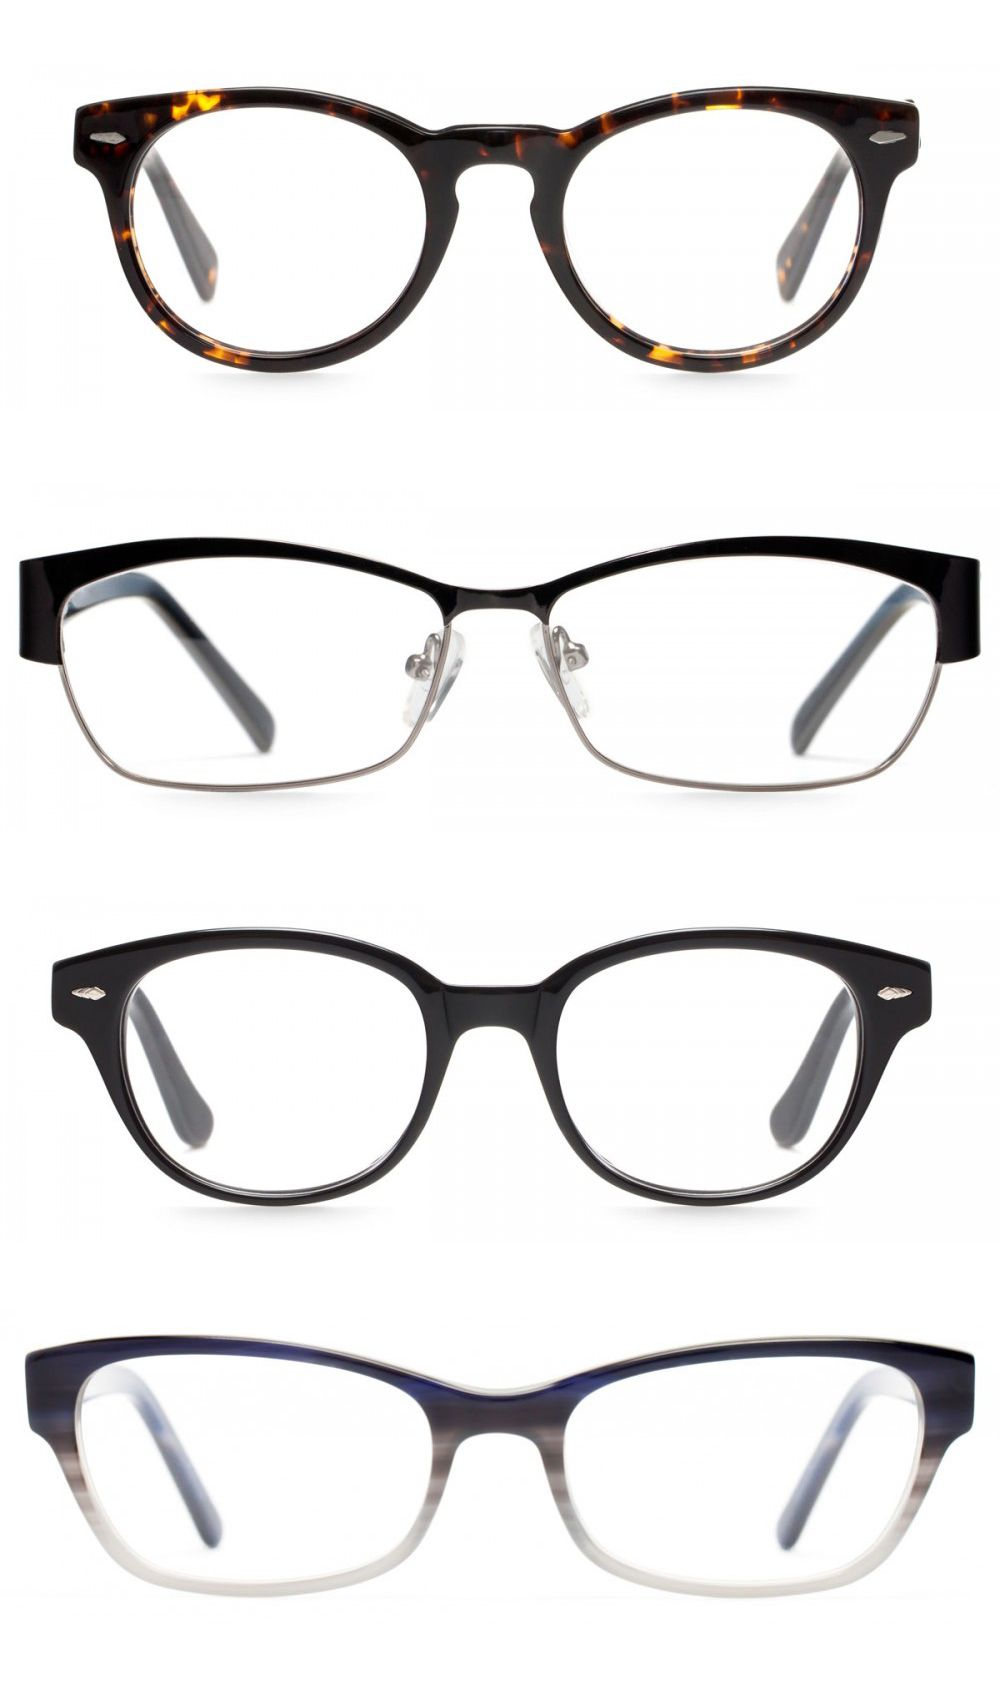 b77ccace61f9 The perfect glasses for square faces | felix + iris Square Face Sunglasses,  Rectangle Face